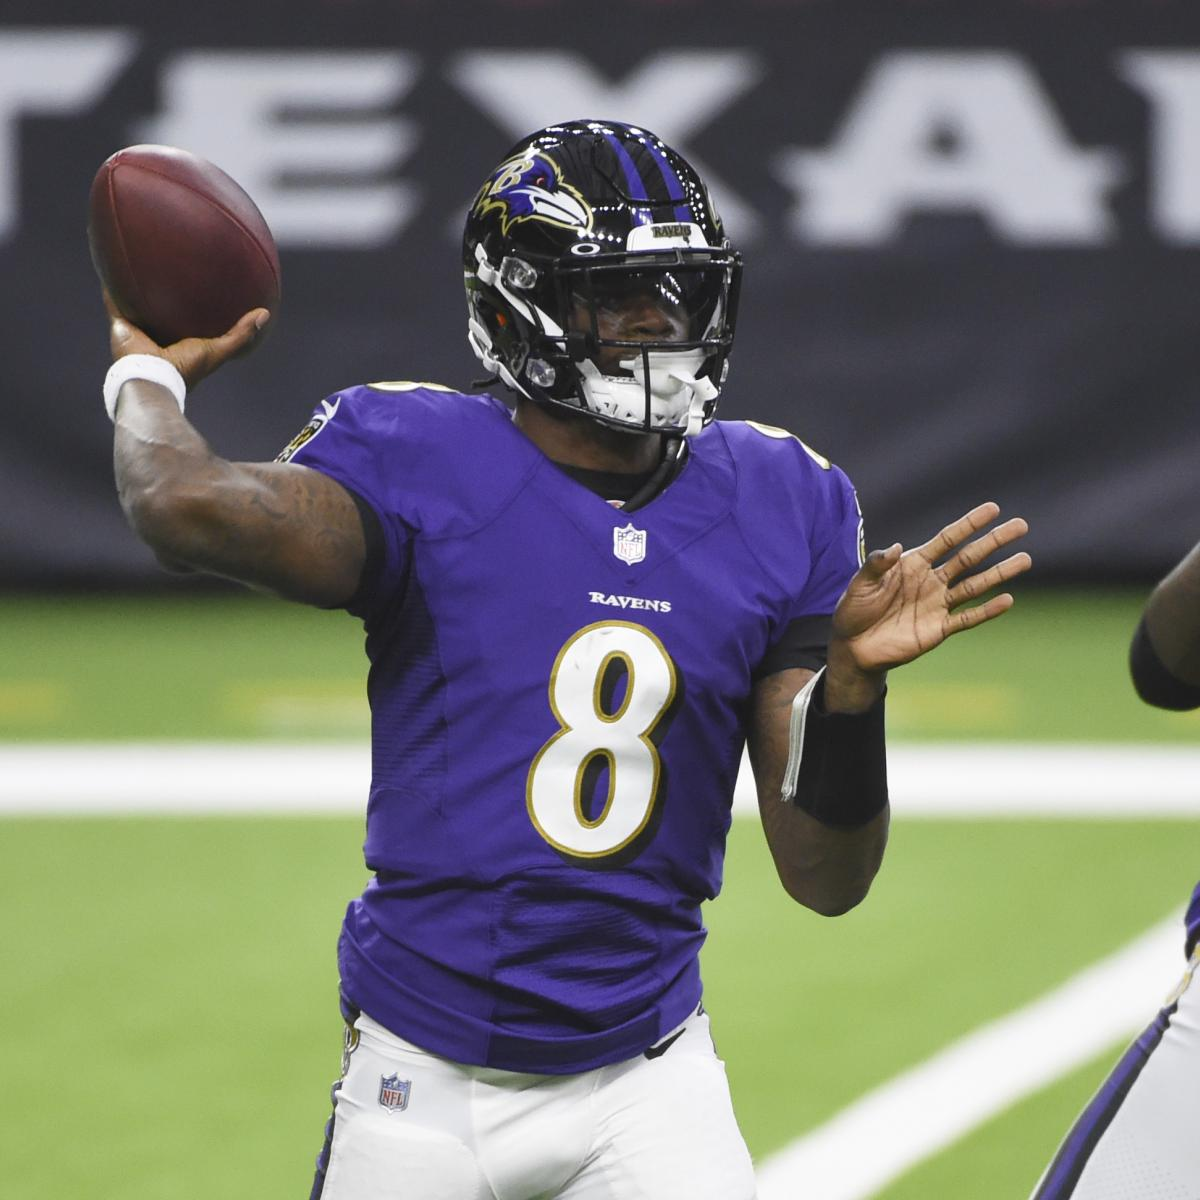 Fantasy Football Week 3: Rankings, Stat Projections and Top Waiver-Wire Adds